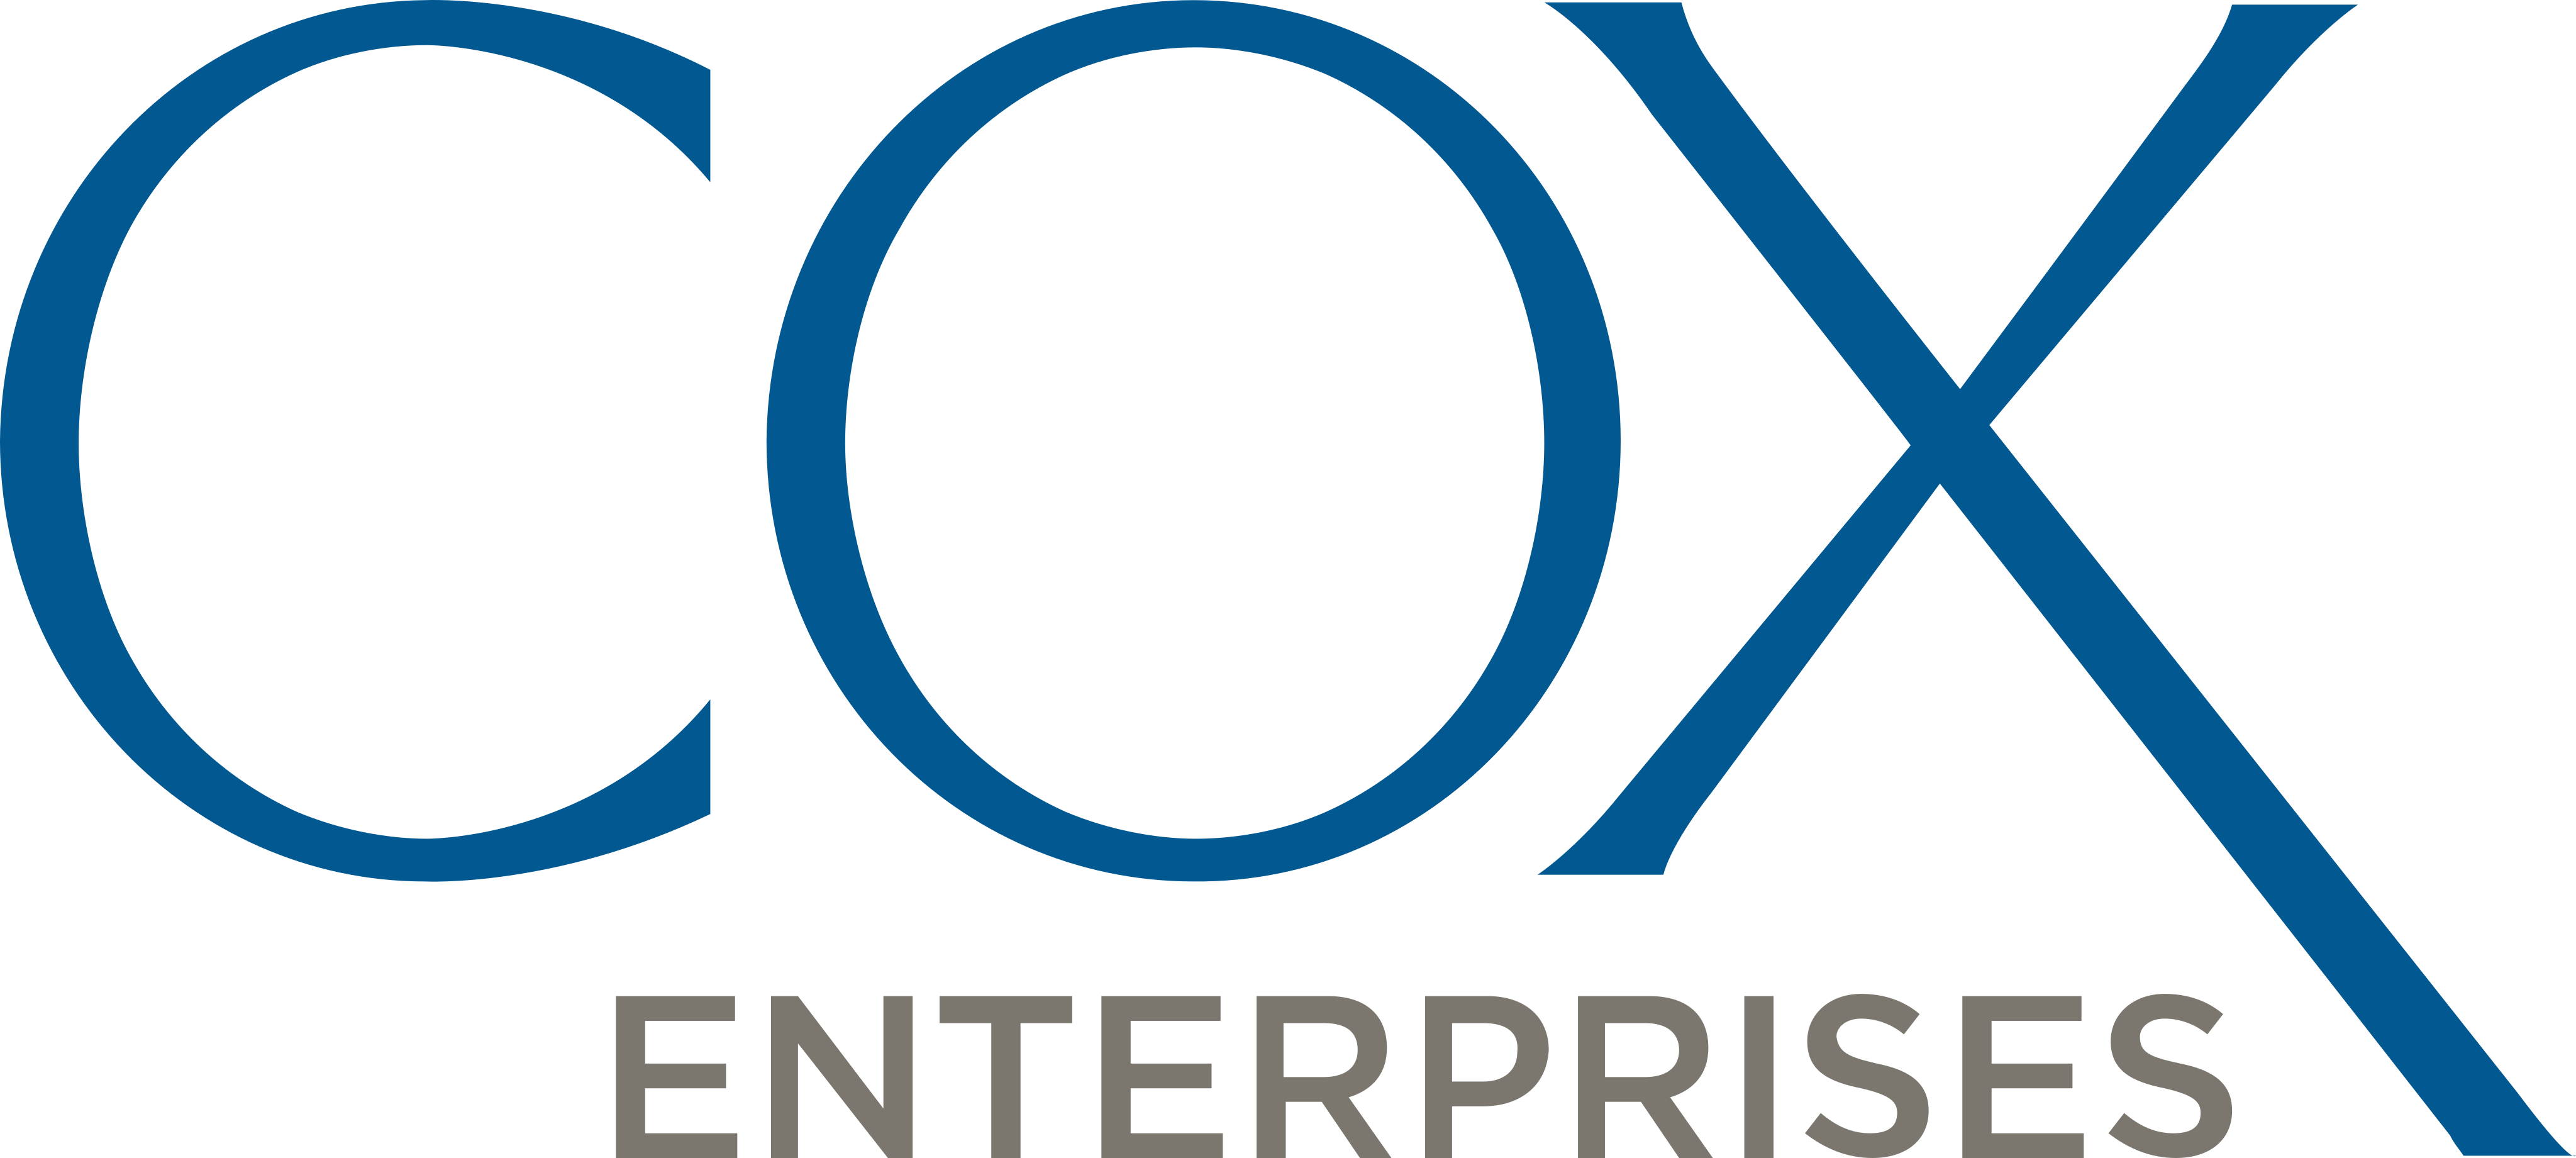 cox enterprises logo 1 - Cox Enterprises Logo